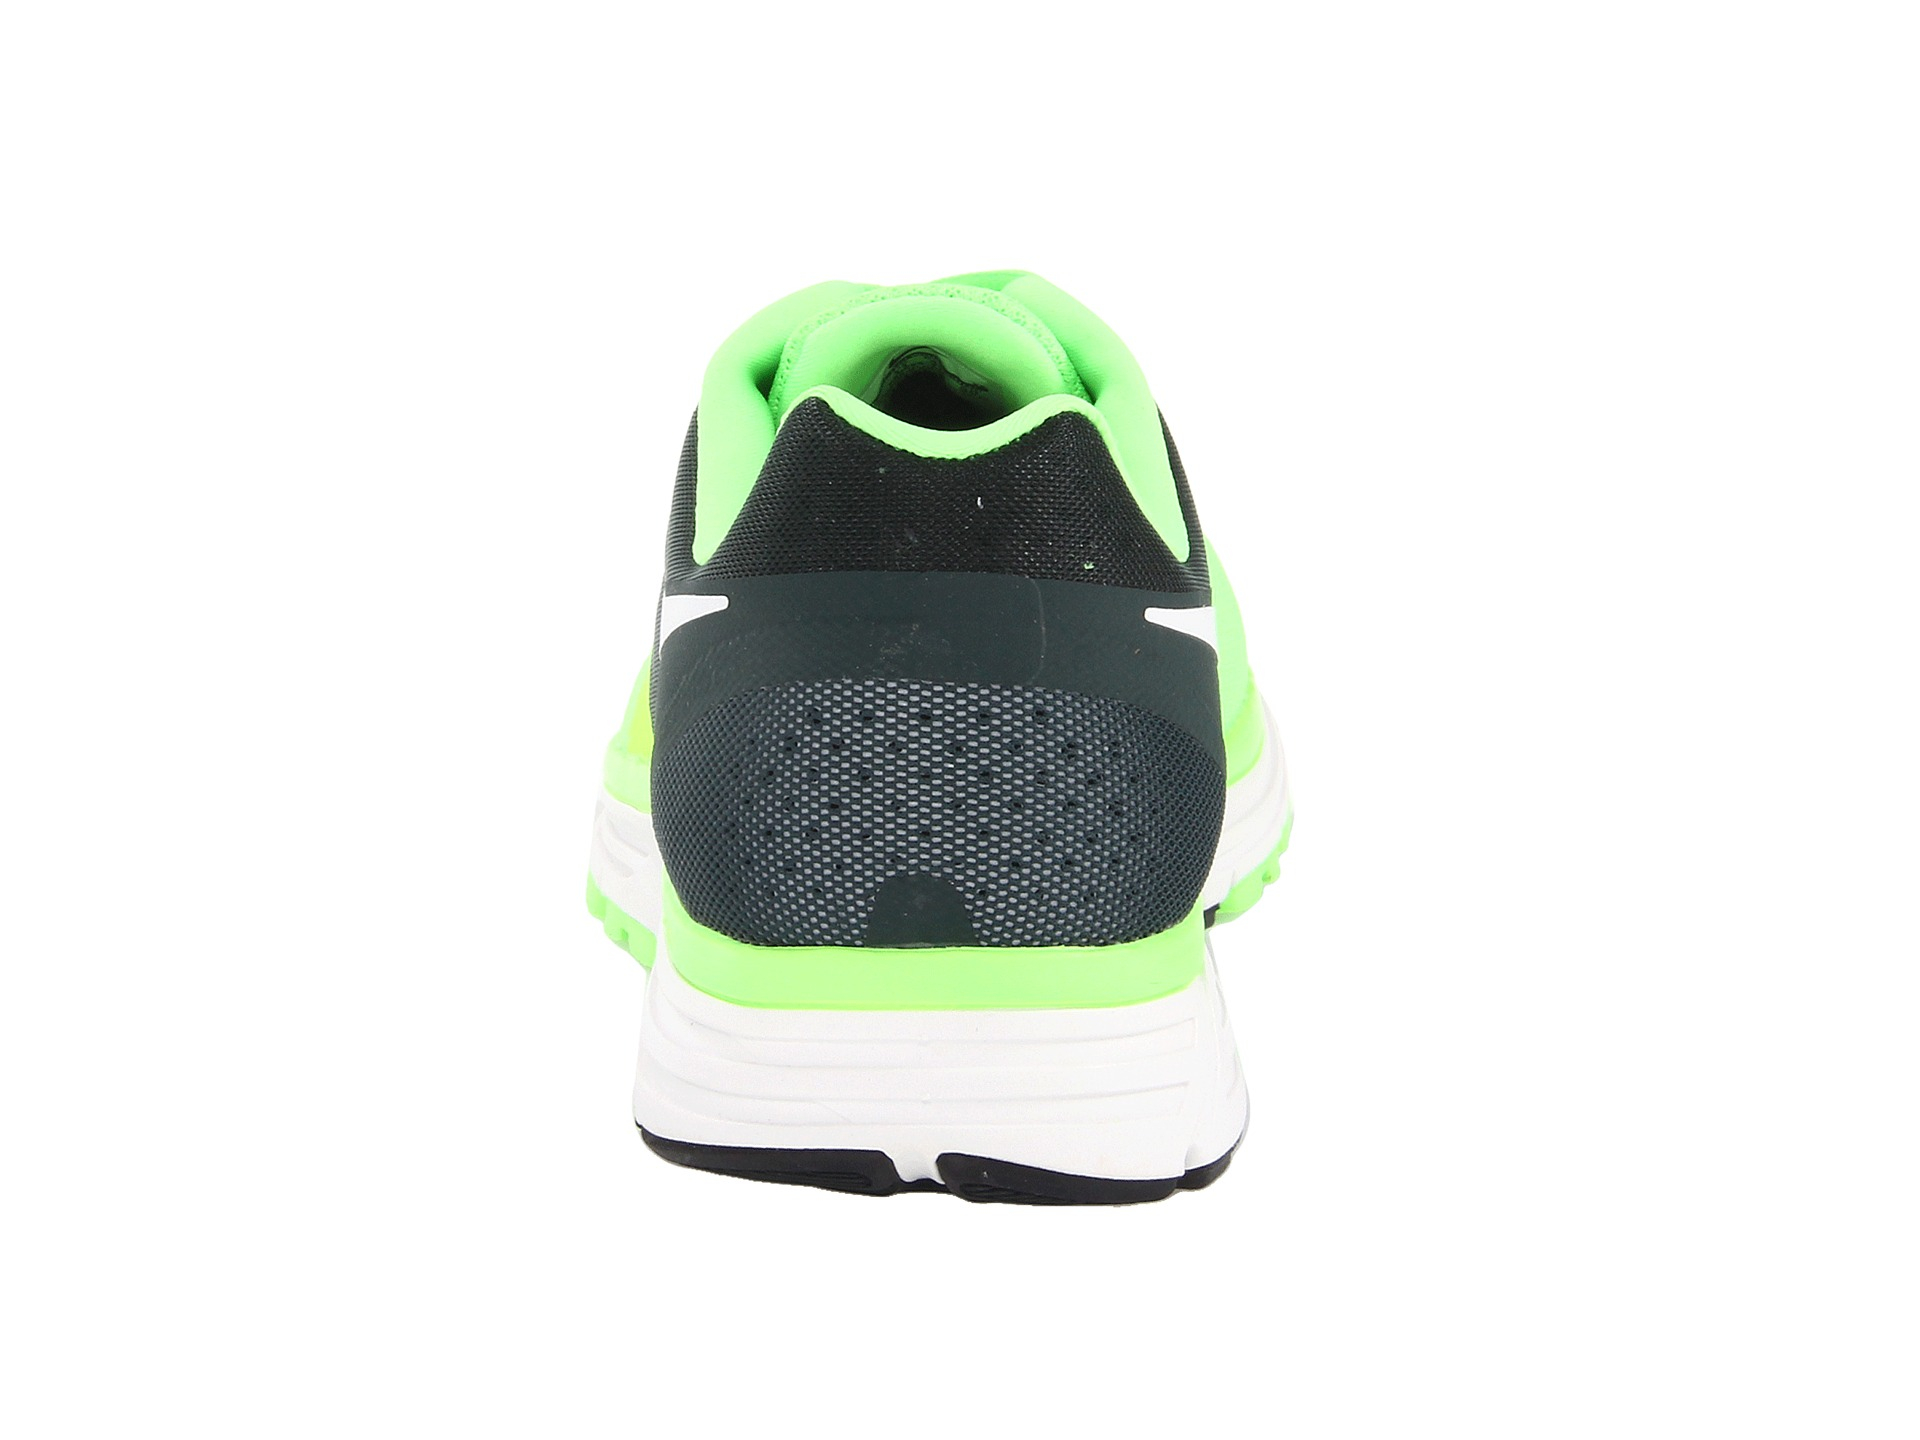 82a173c62ba68 ... canada lyst nike zoom vomero 8 in green for men 59eef 17d97